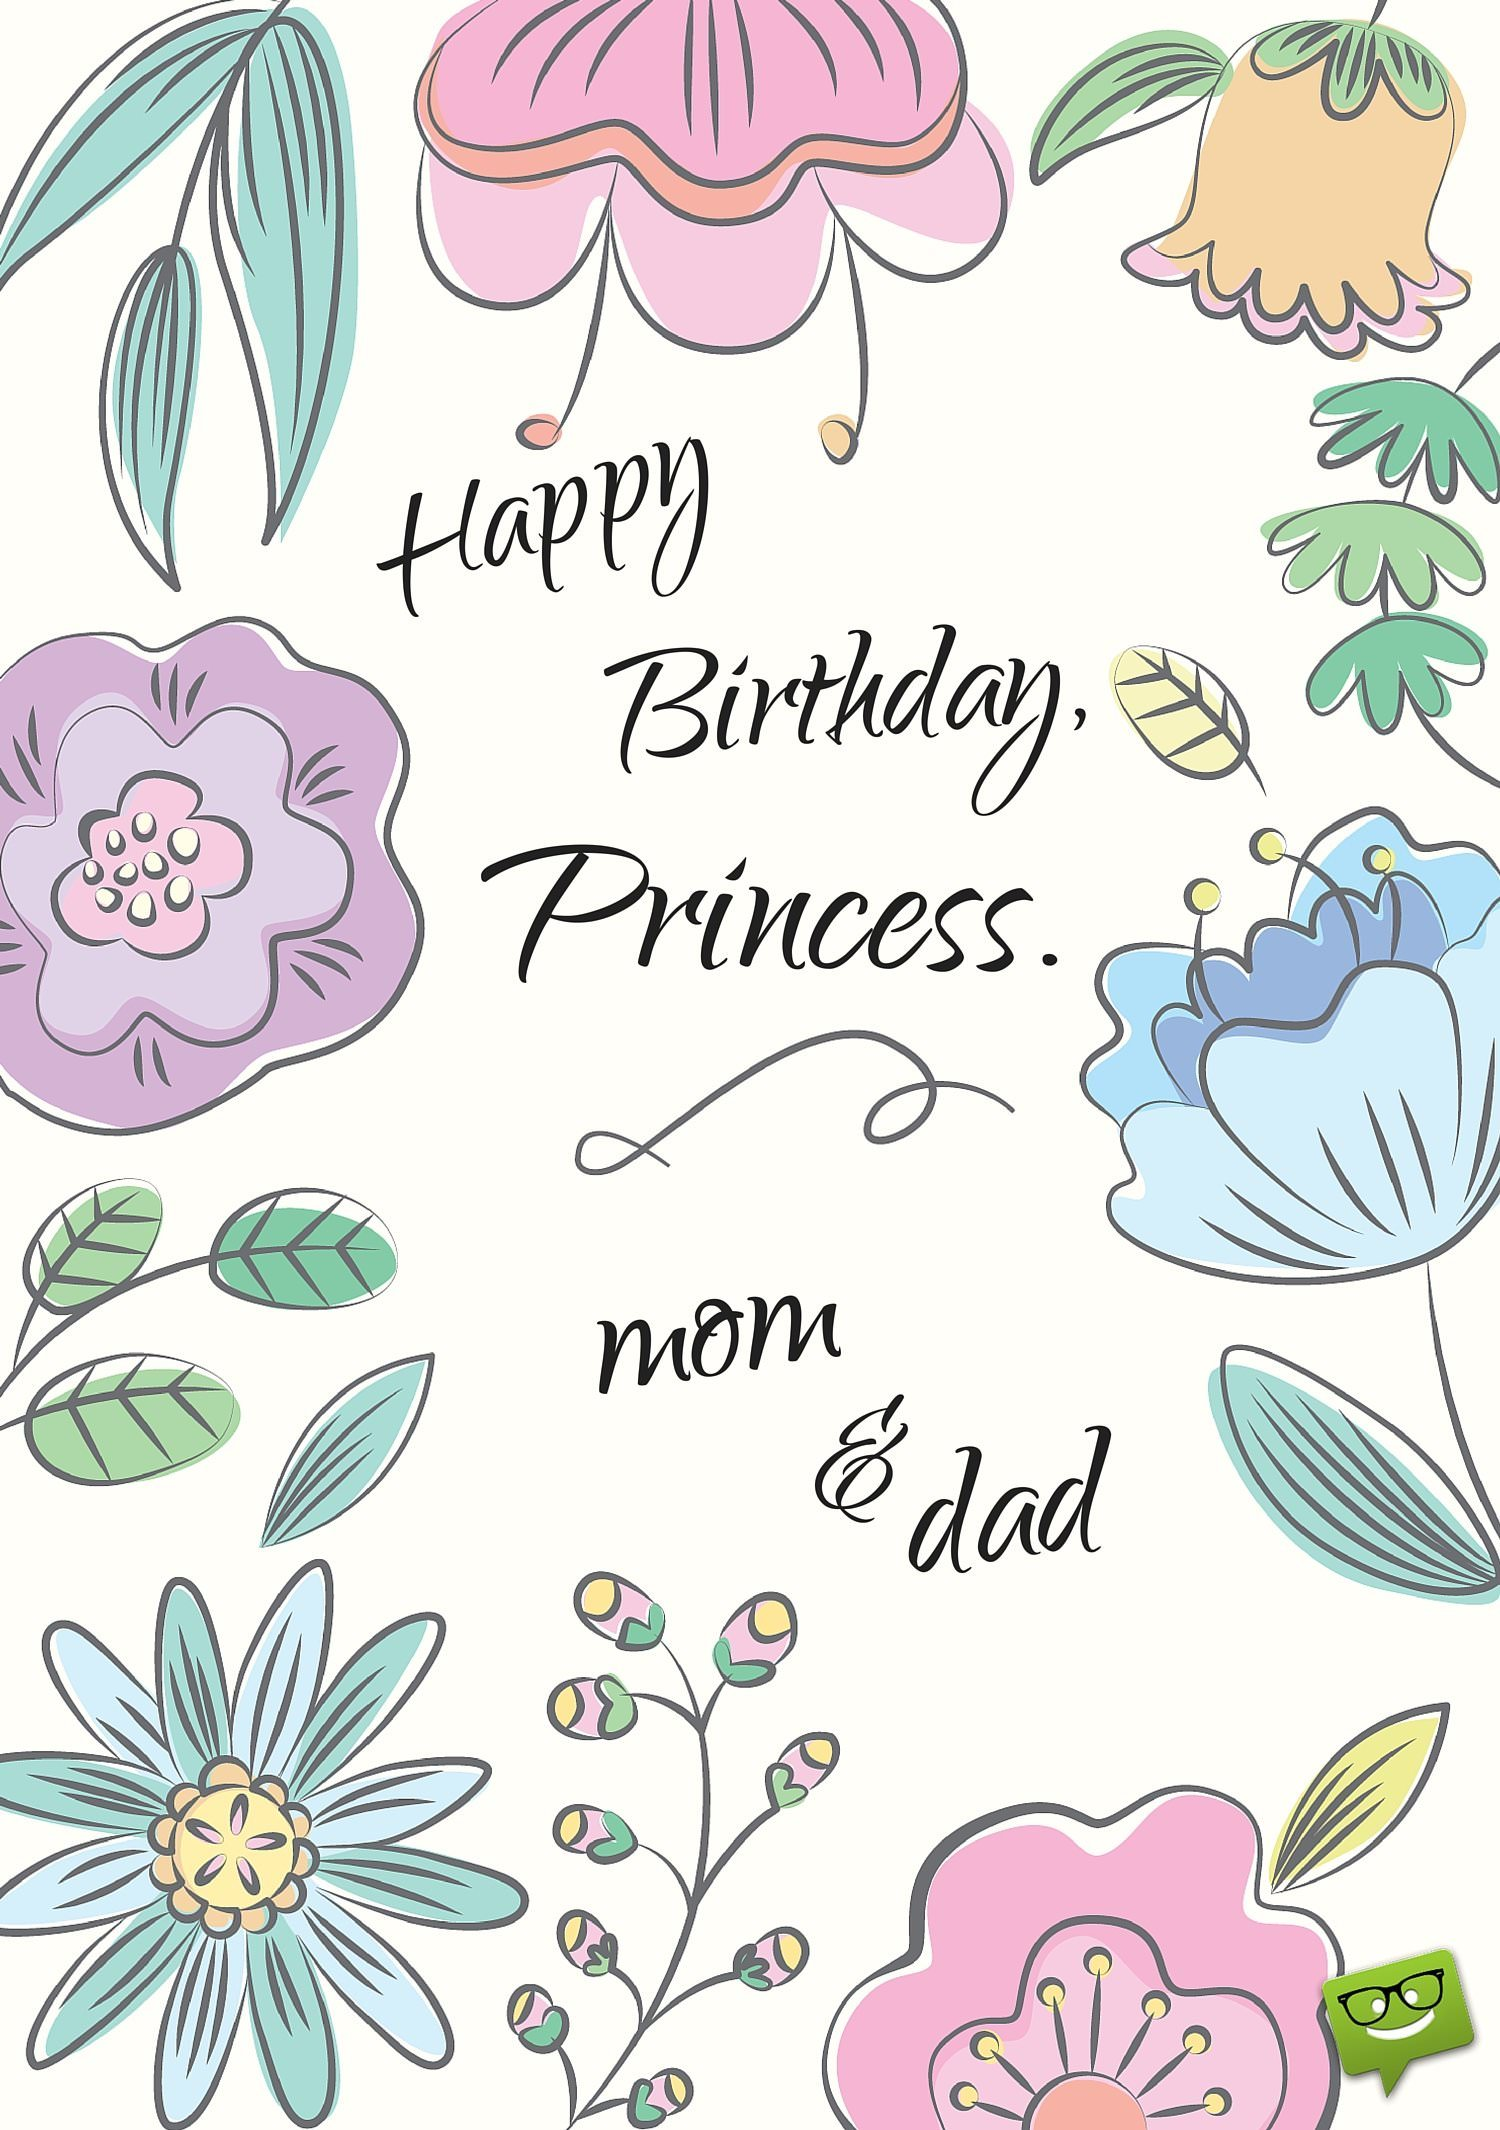 Happy Birthday Princess Mom And Dad